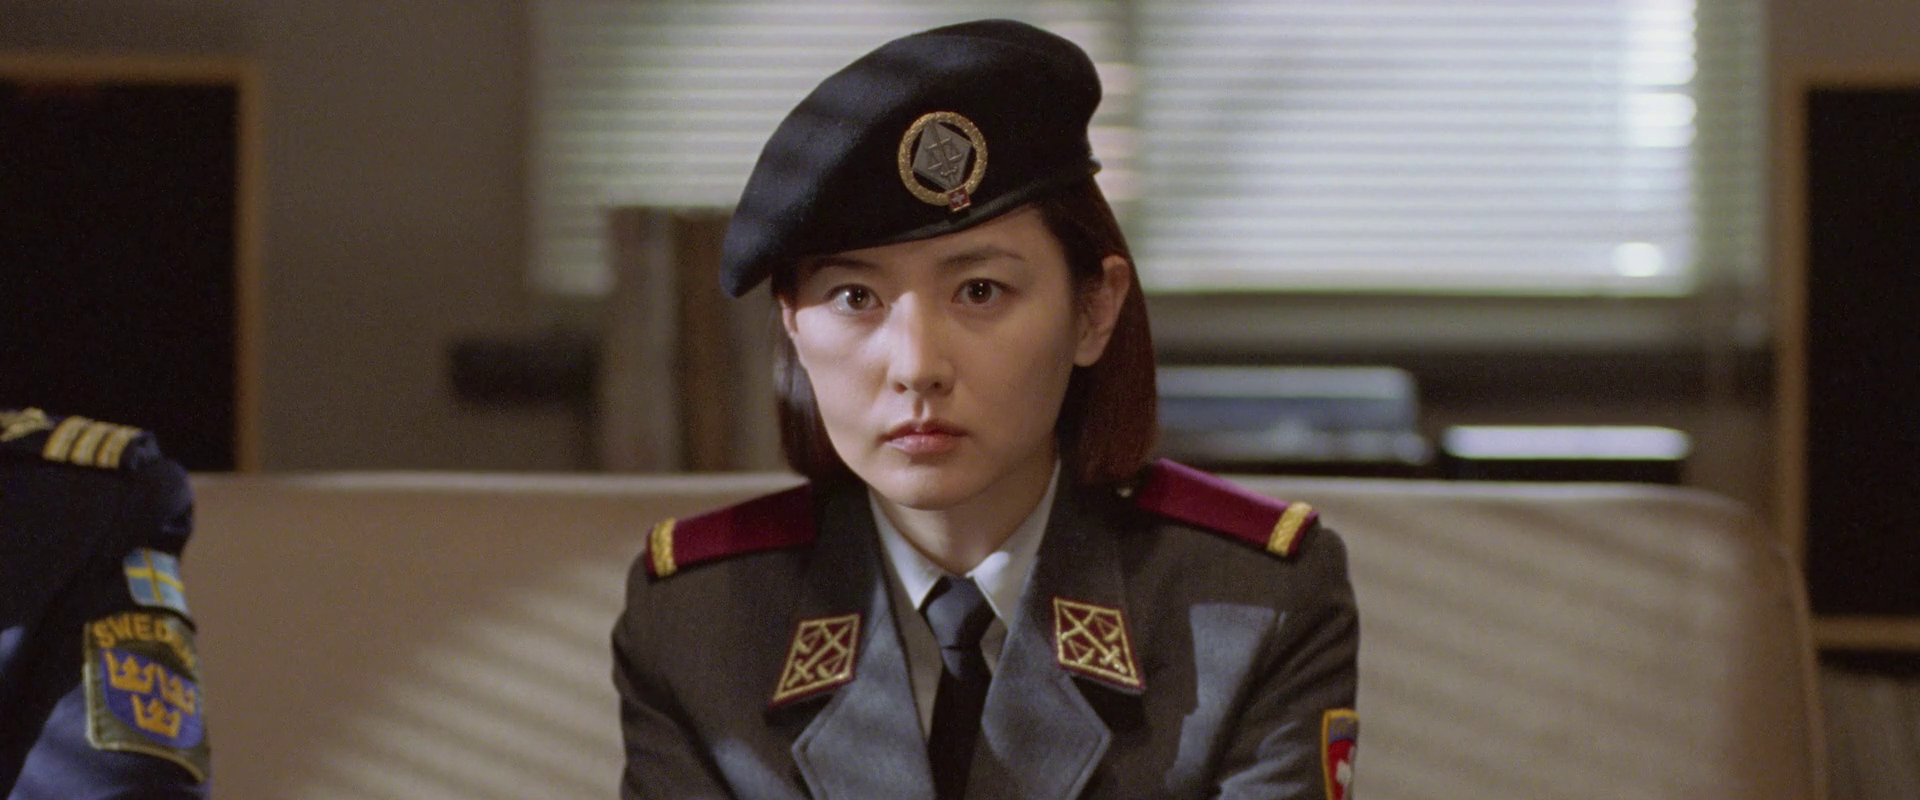 Download JSA Joint Security Area 2000 1080p BluRay x264-GiMCHi Torrent